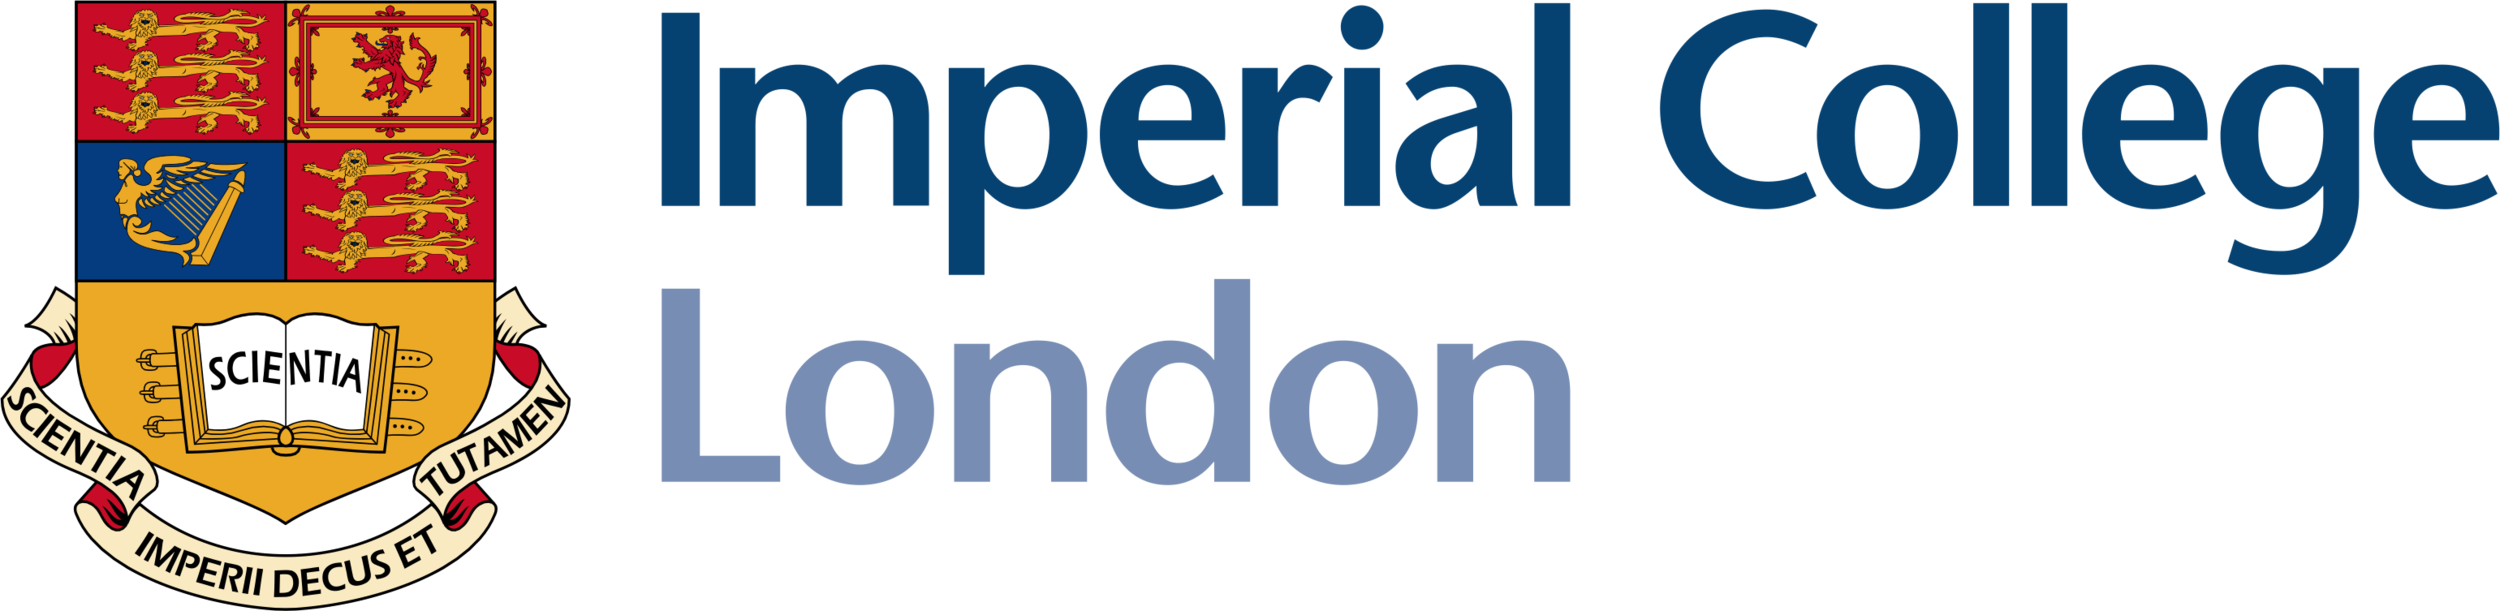 Imperial-College-London_Logo.png